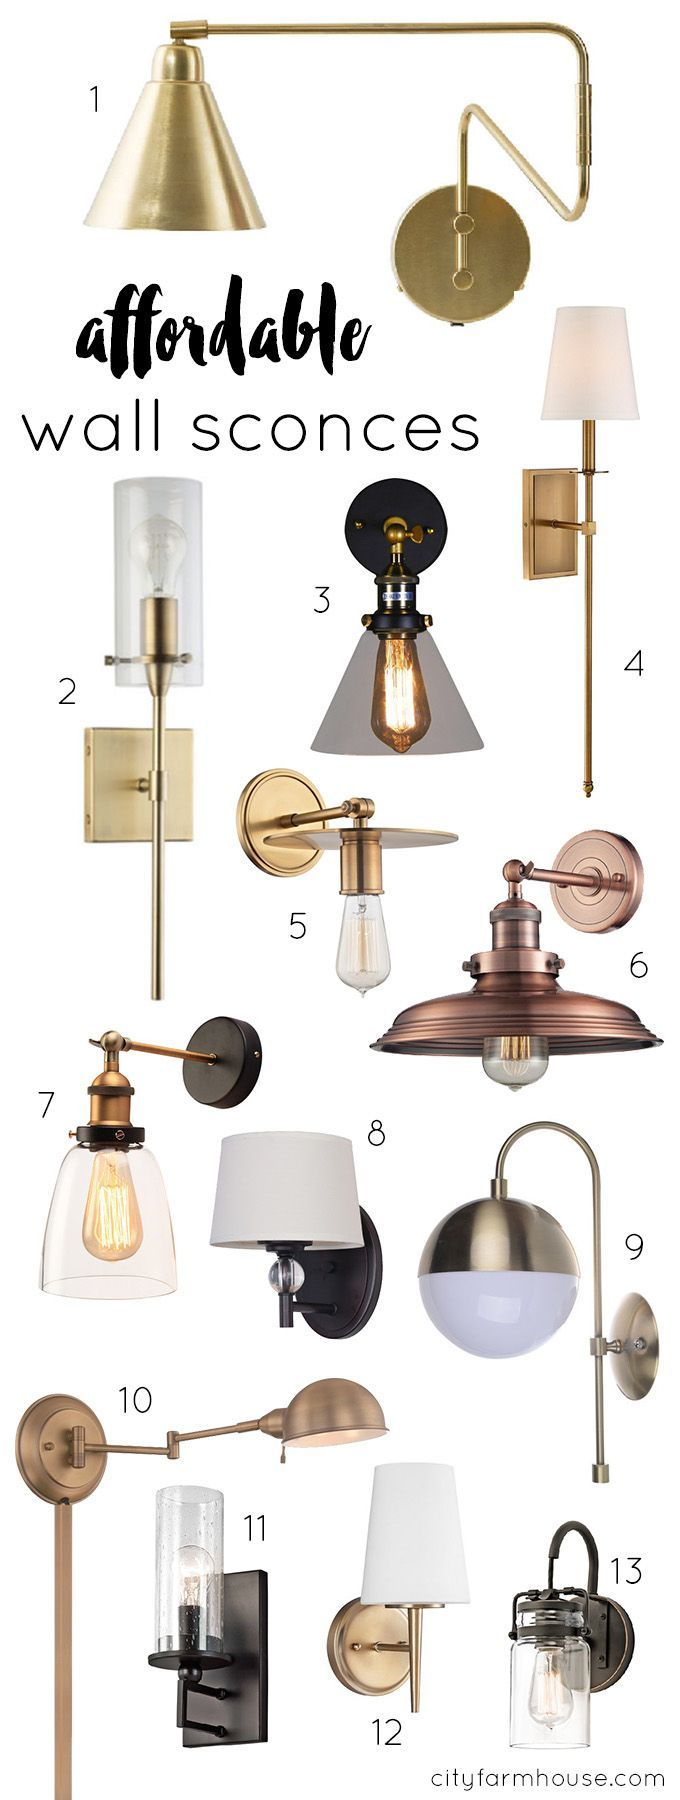 best wall sconces images on pinterest candle wall sconces